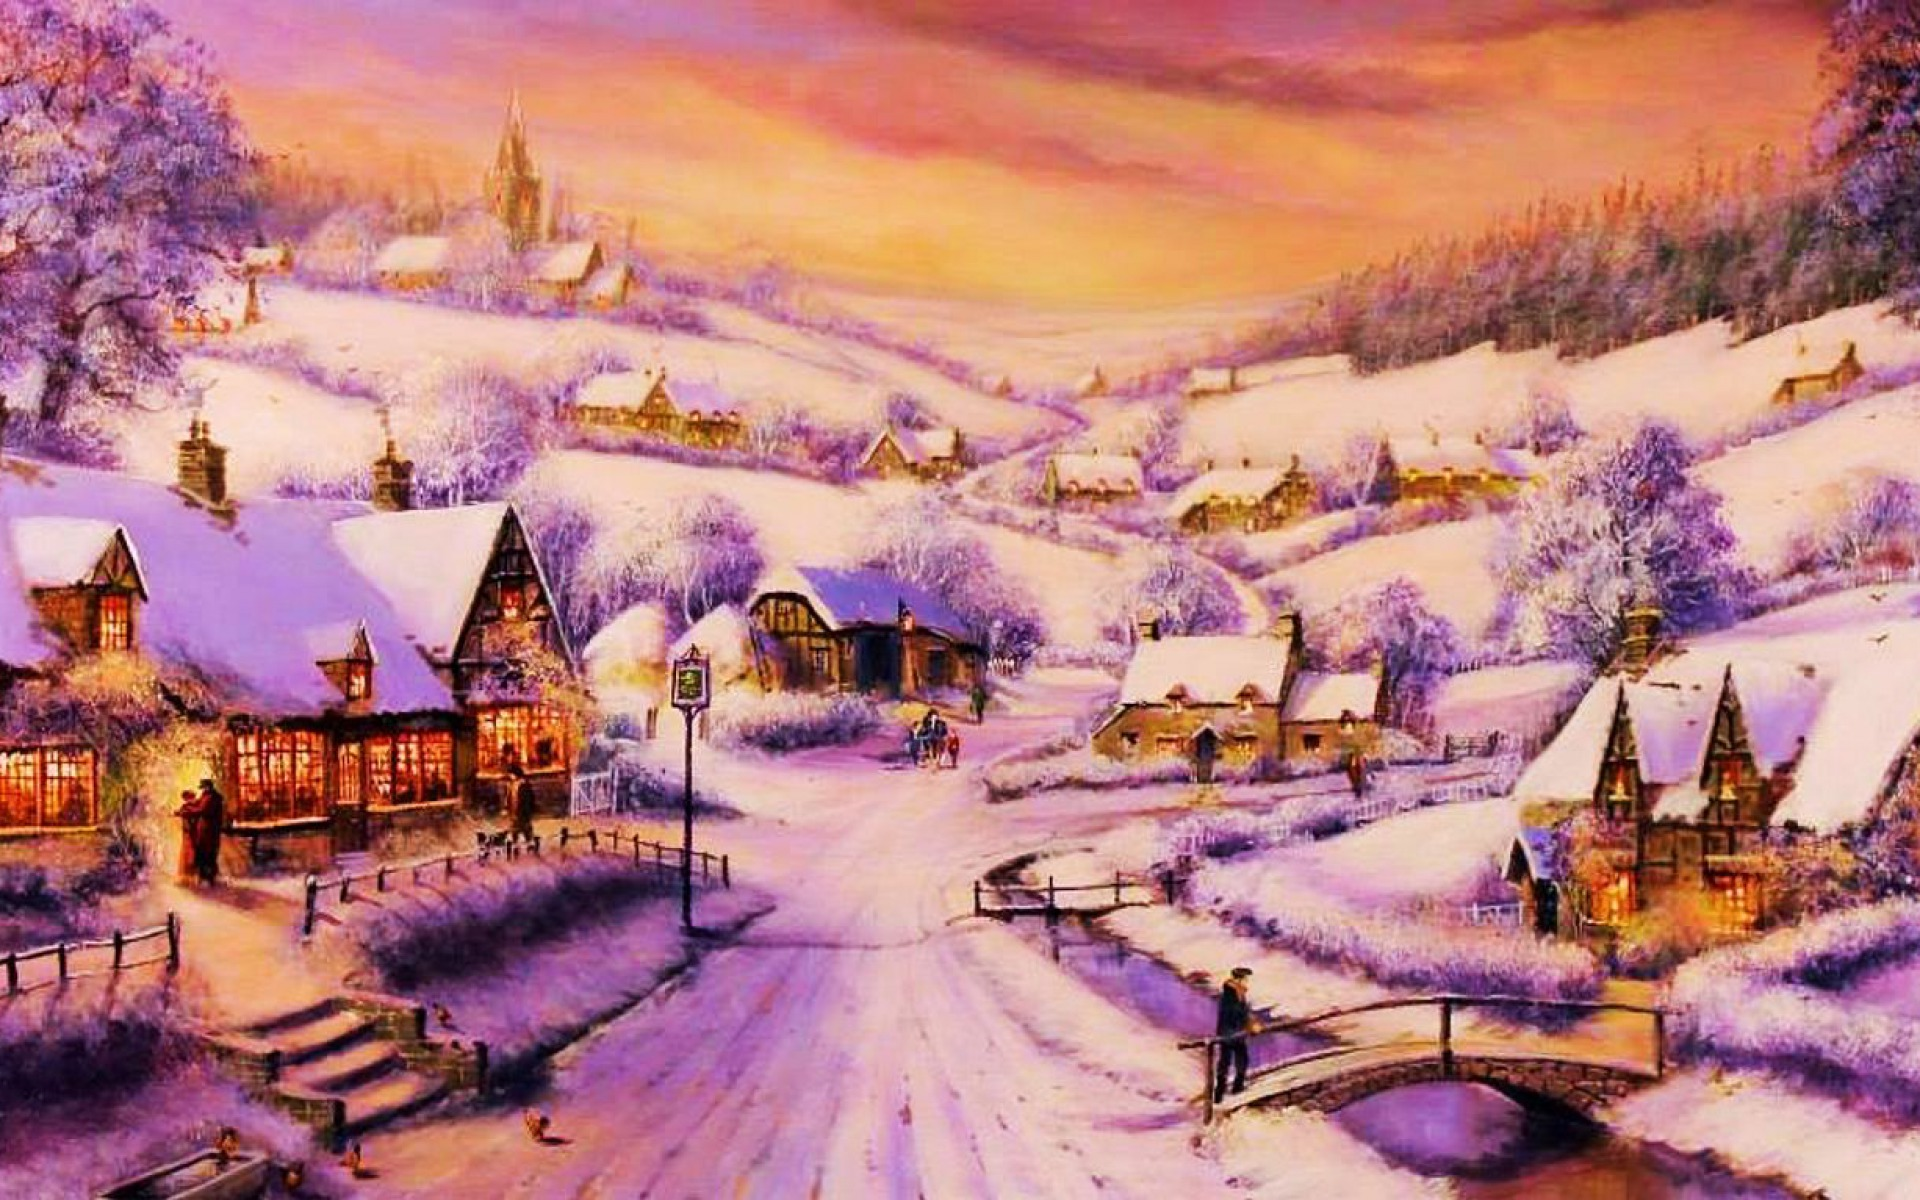 Xmas Wallpaper Iphone Houses Path Village Winter Wallpapers Houses Path